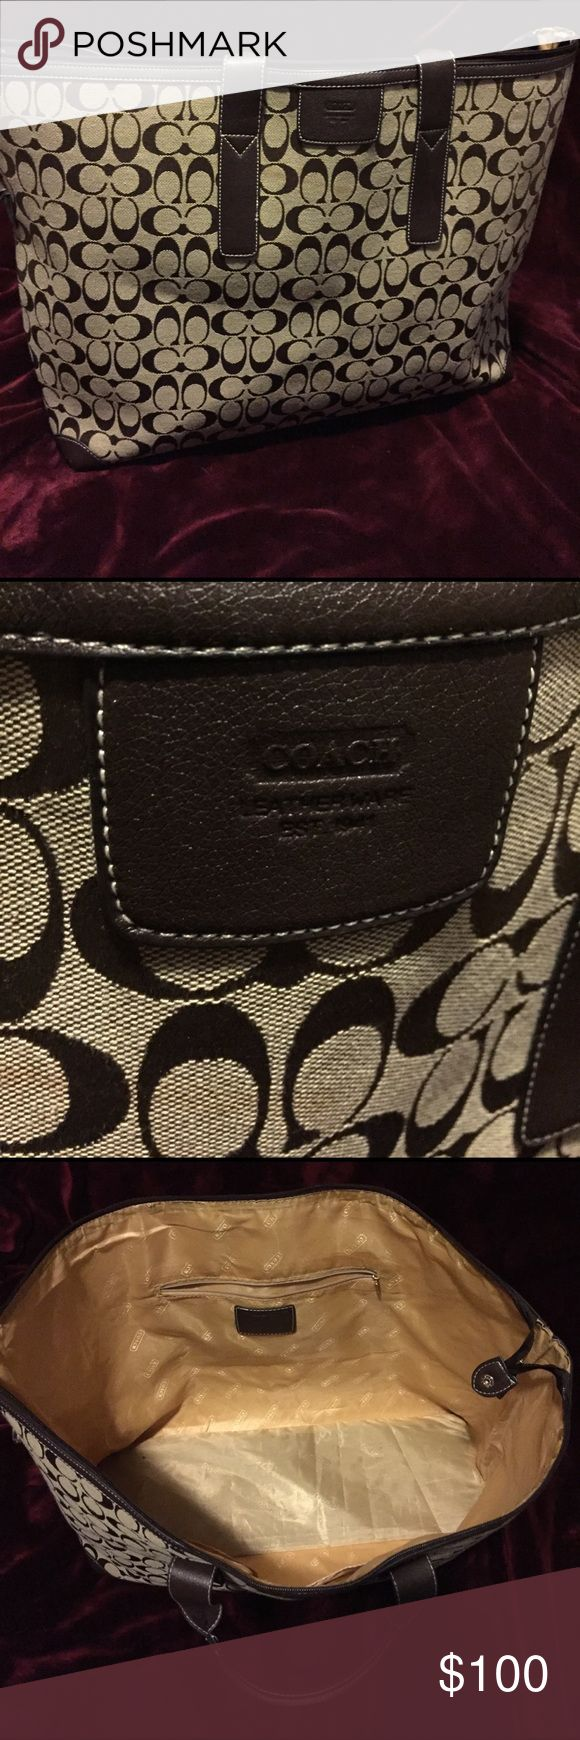 COACH travel bag/duffle Very large COACH travel bag. Can be an overnight bag or carry on bag Coach Bags Totes